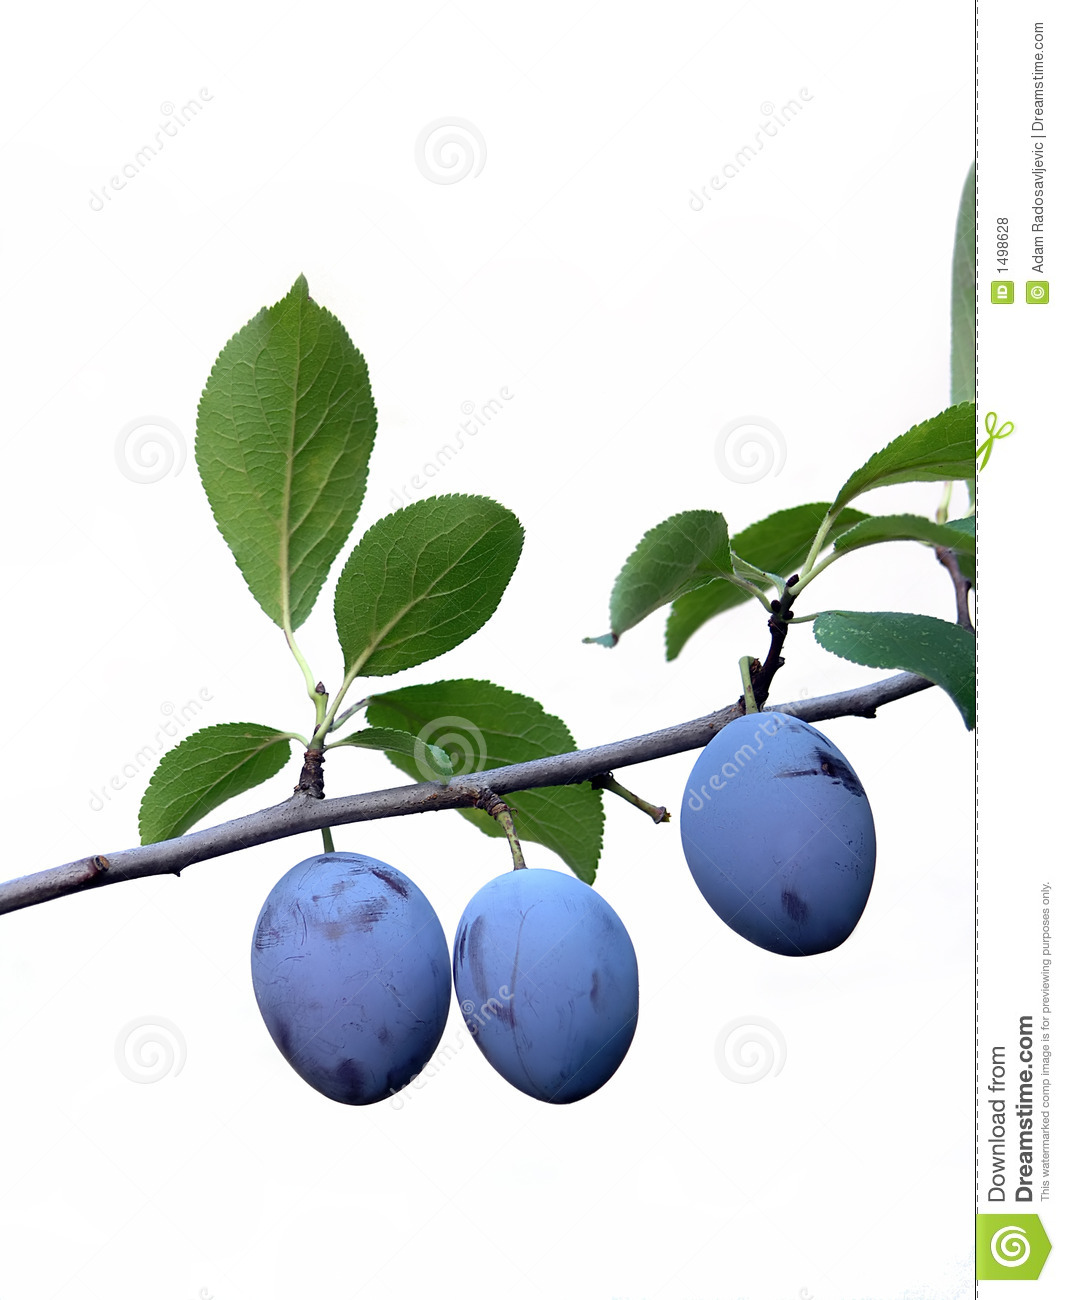 Download Plum stock photo. Image of summer, three, leafs, blue - 1498628